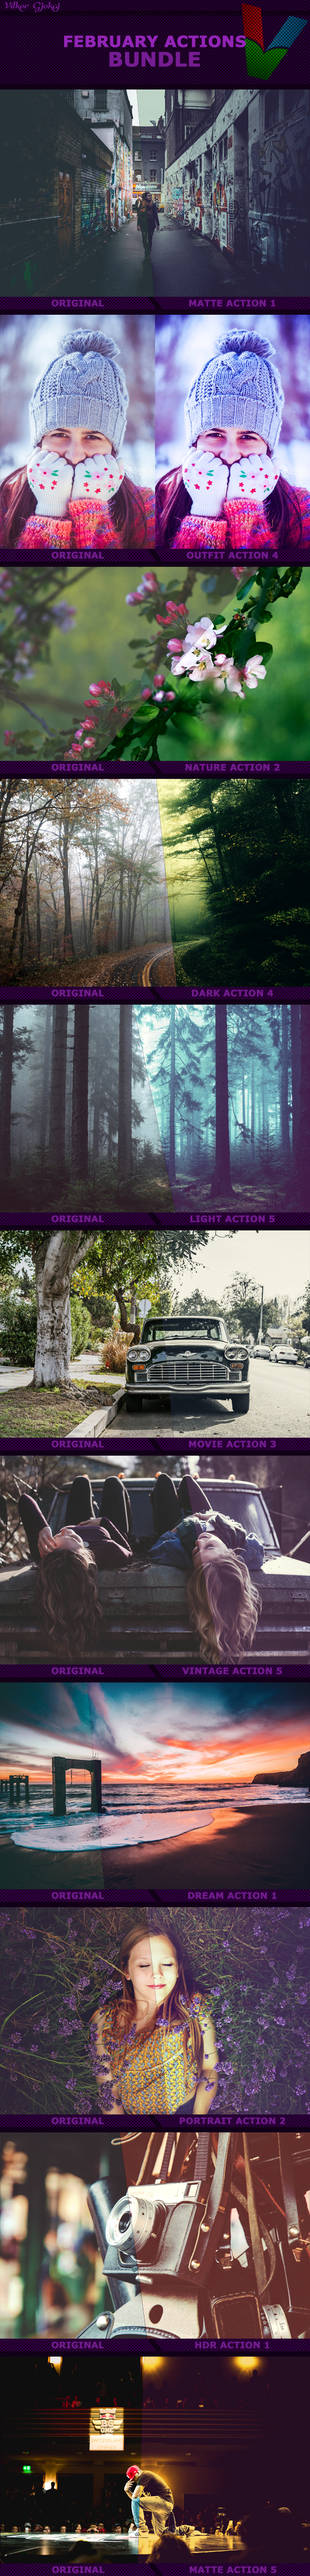 February Photoshop Actions BUNDLE